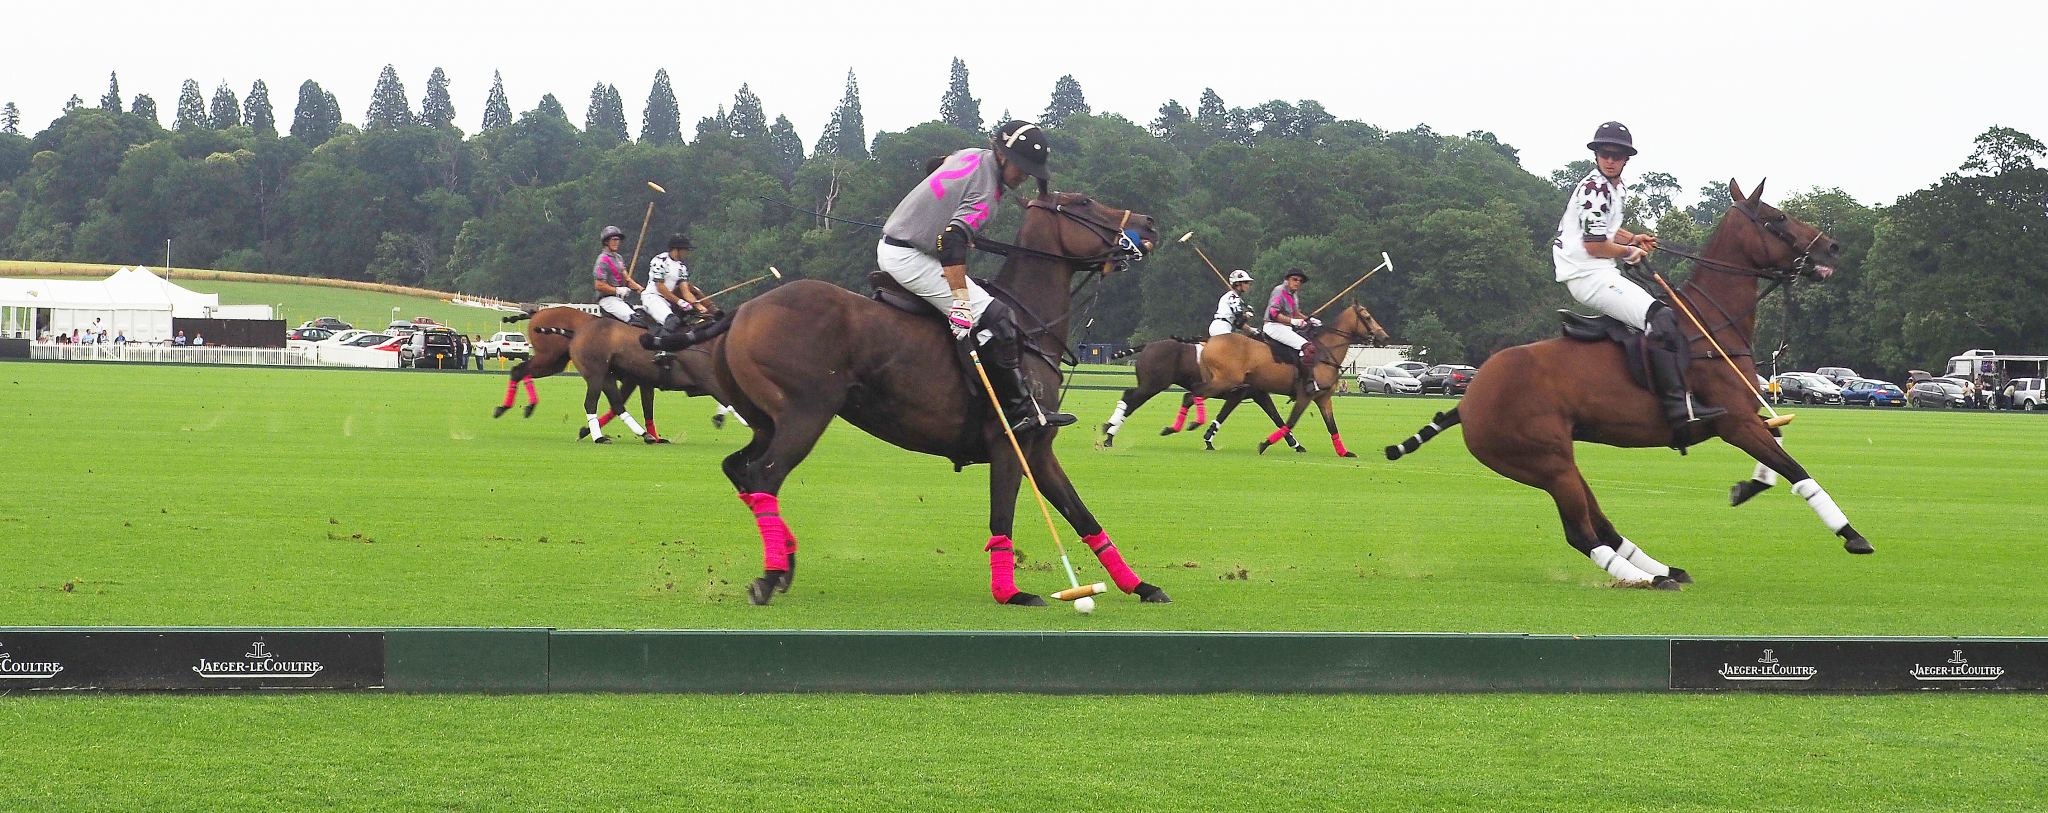 Cowdray Polo Club